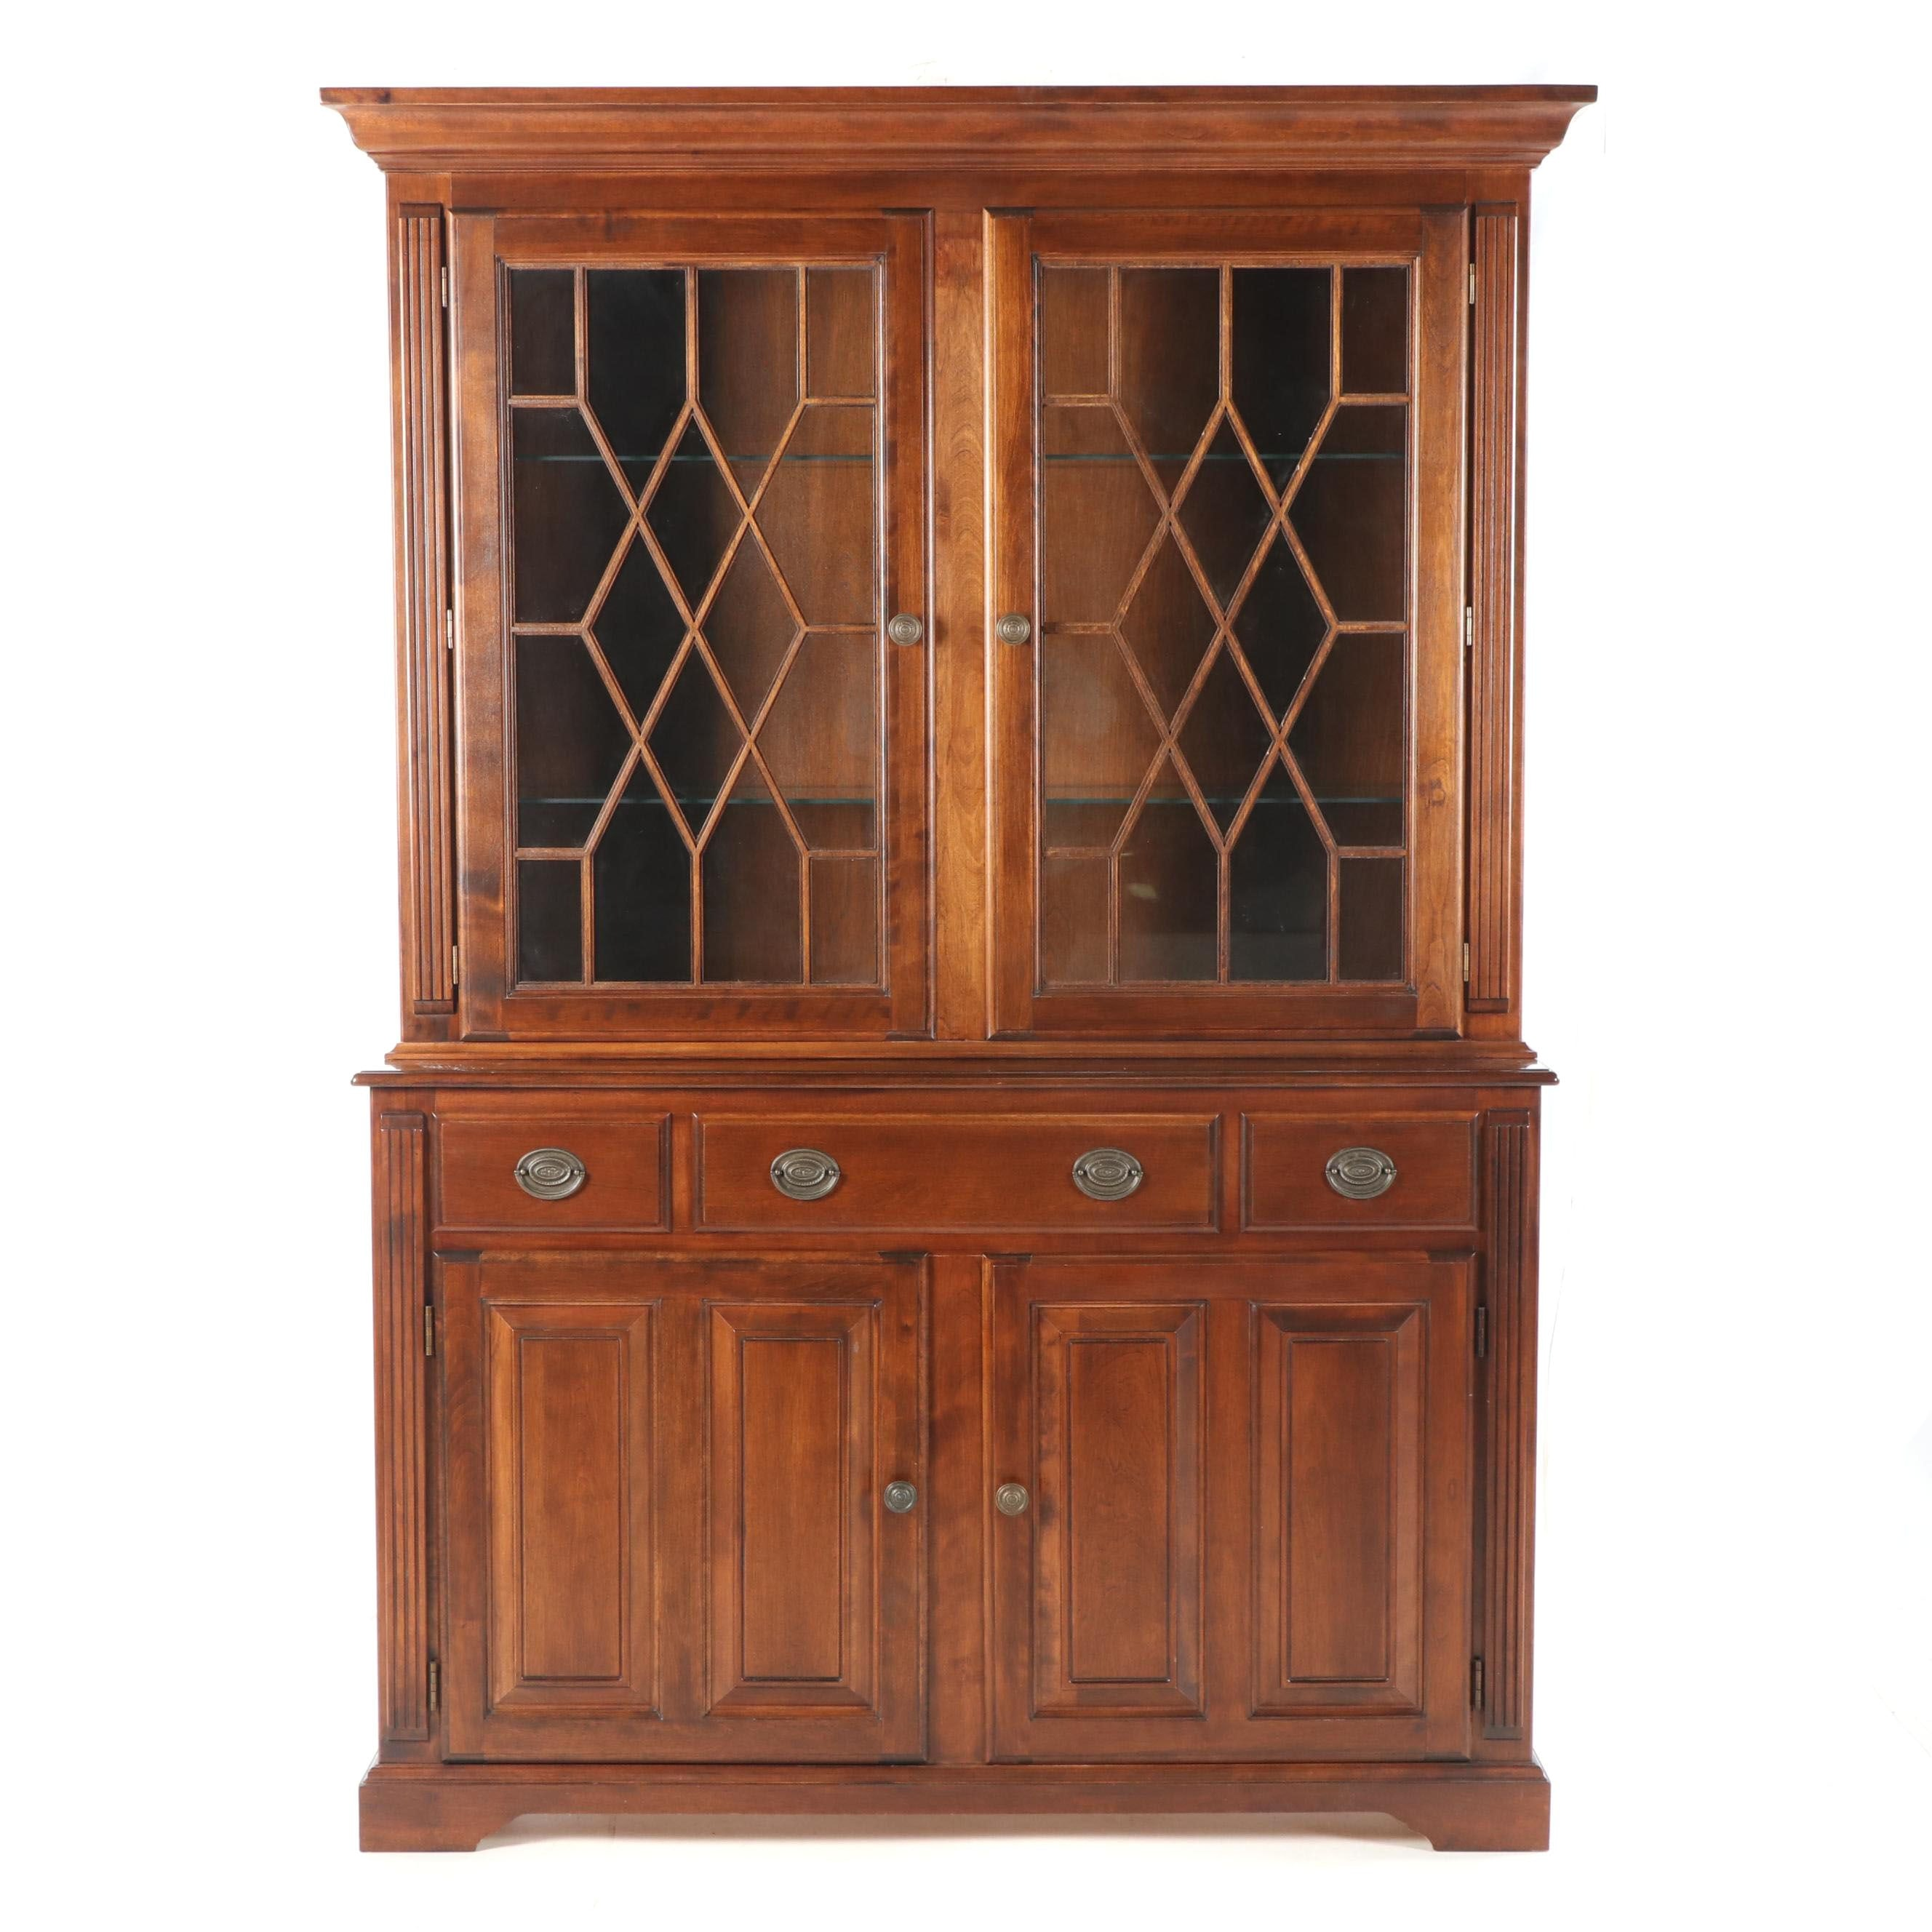 Federal Style Mahogany Illuminated China Cabinet by Nichols & Stone, 21st C.